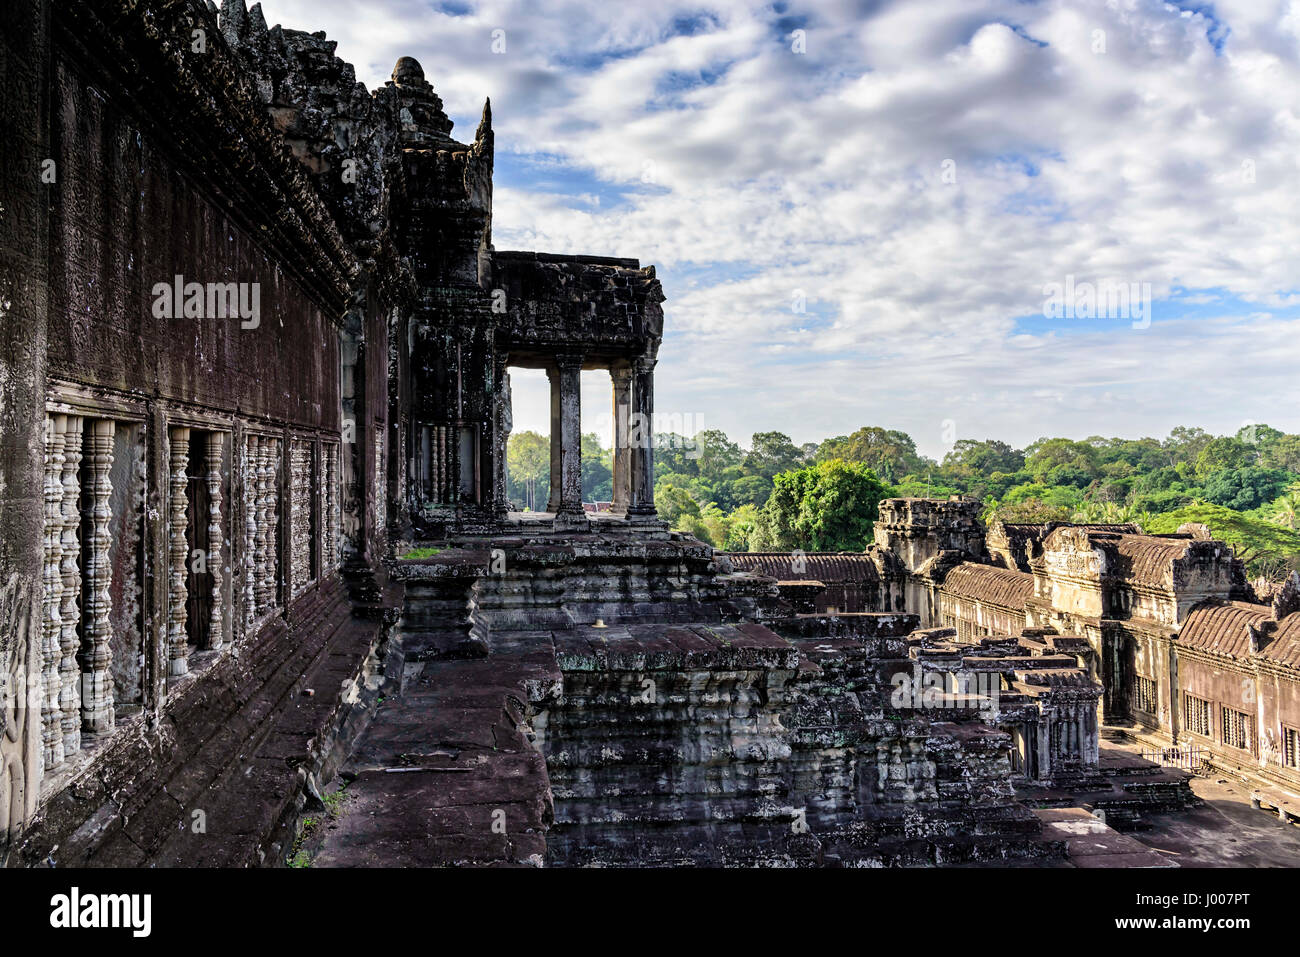 Angkor Wat terrace. This is a temple complex in Cambodia and the largest religious monument in the world originally - Stock Image